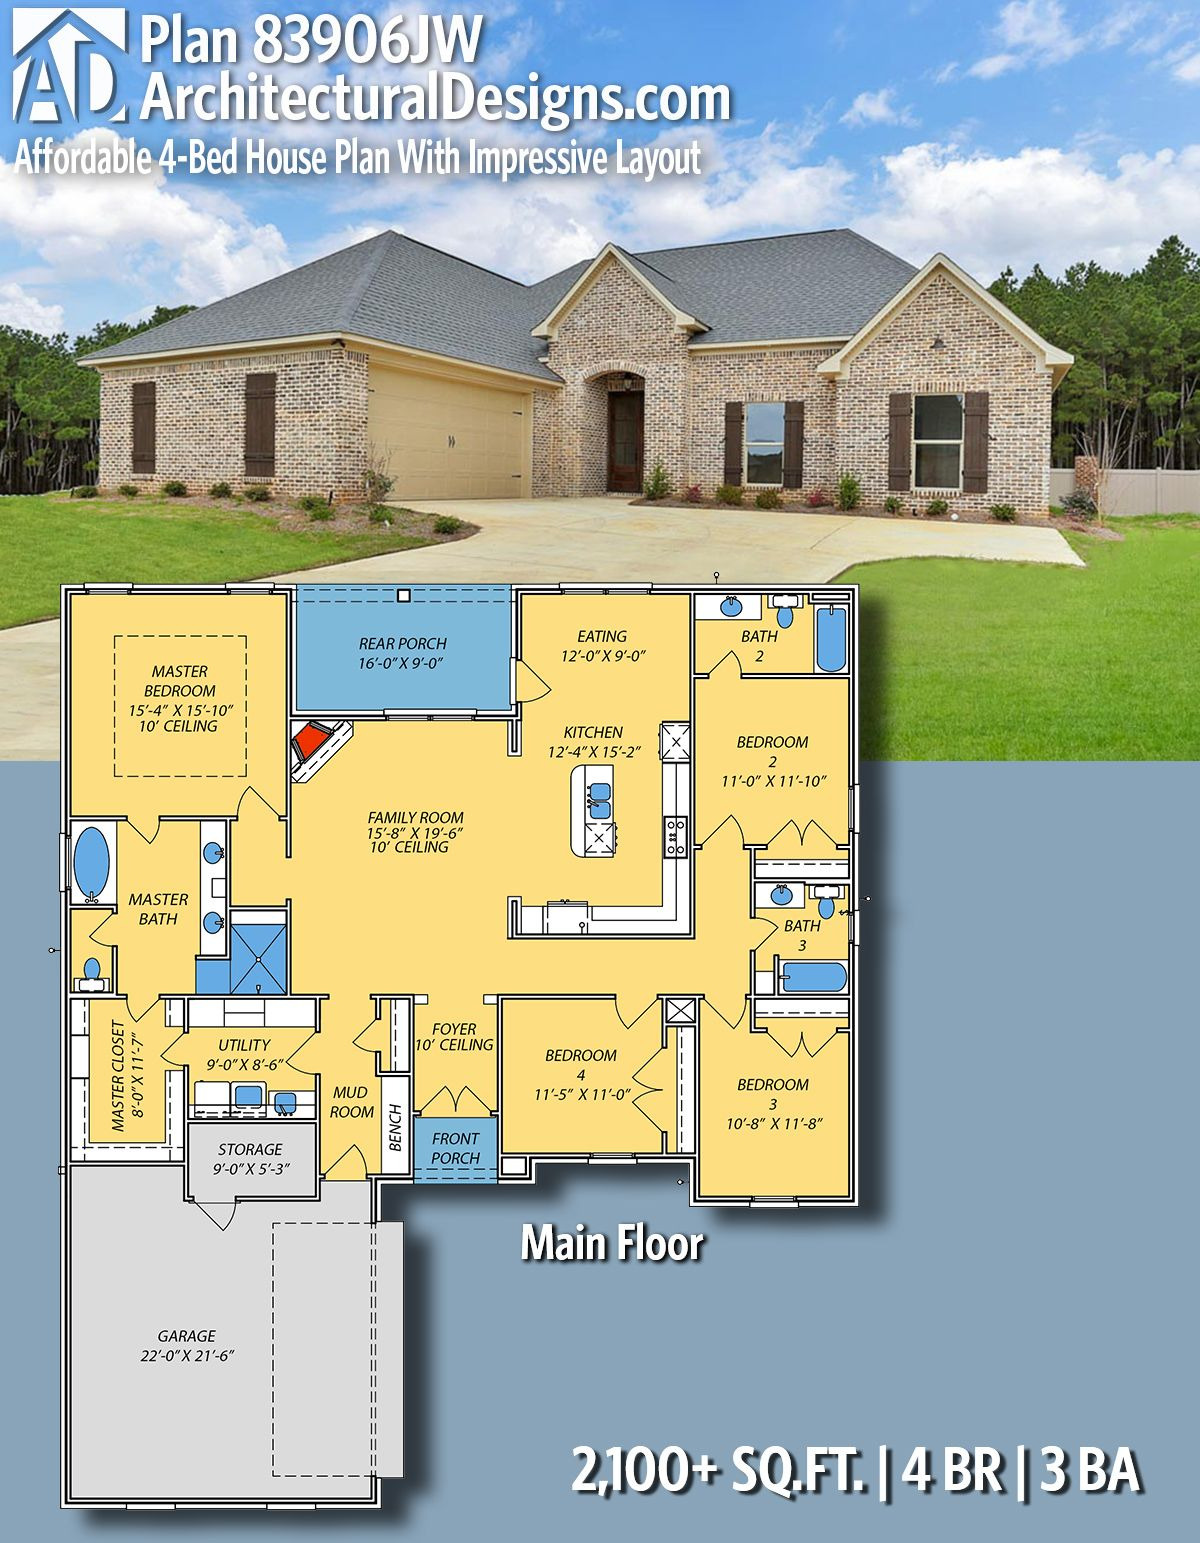 Low Price House Plans Lovely Plan Jw Affordable 4 Bed House Plan with Impressive